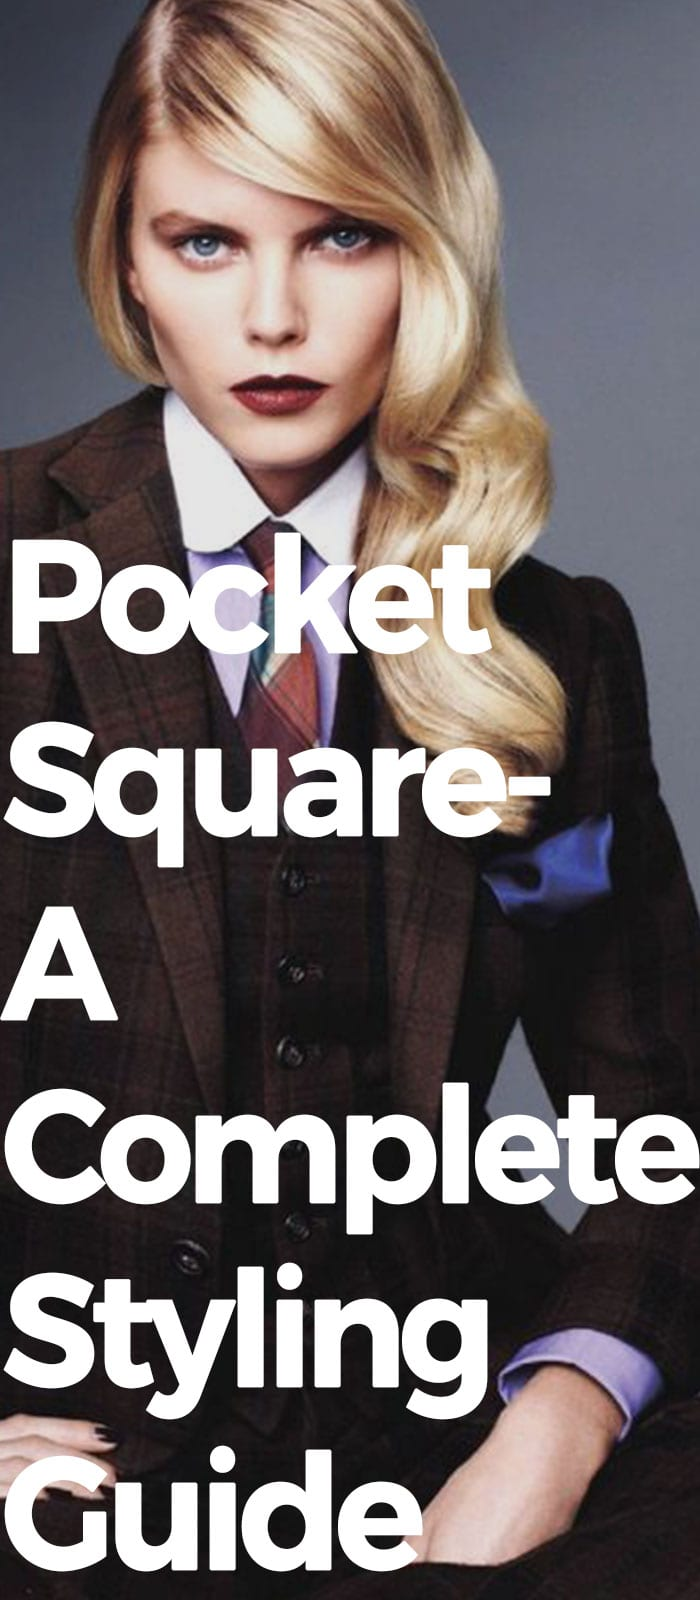 Pocket Square- A Complete Styling Guide For Women